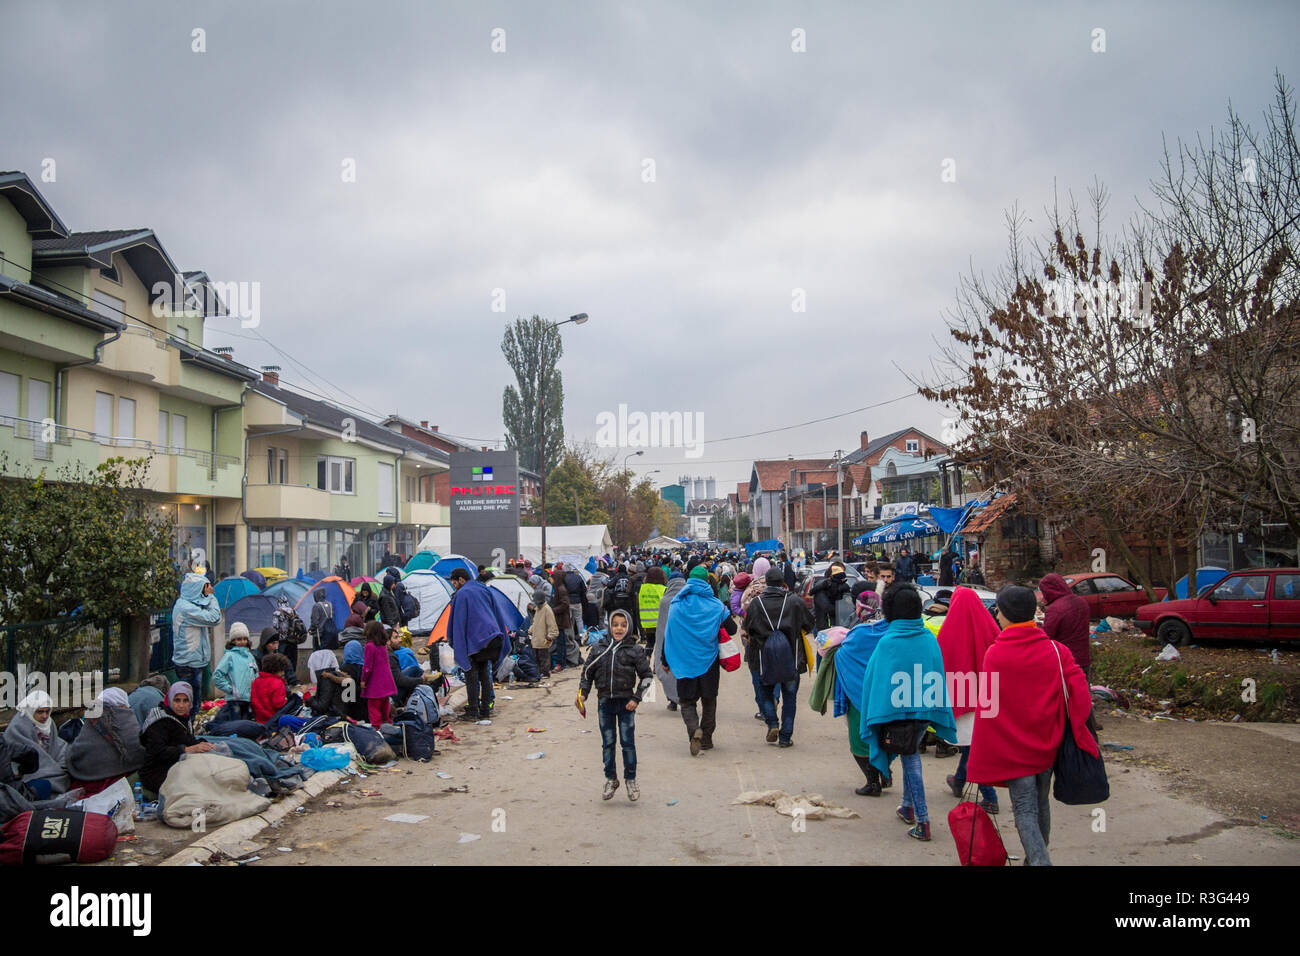 BAPSKA, CROATIA - OCTOBER 24, 2015: Crowd of refugees waiting to register and enter Serbia at the border with Macedonia on Balkans Route, during  Refu - Stock Image